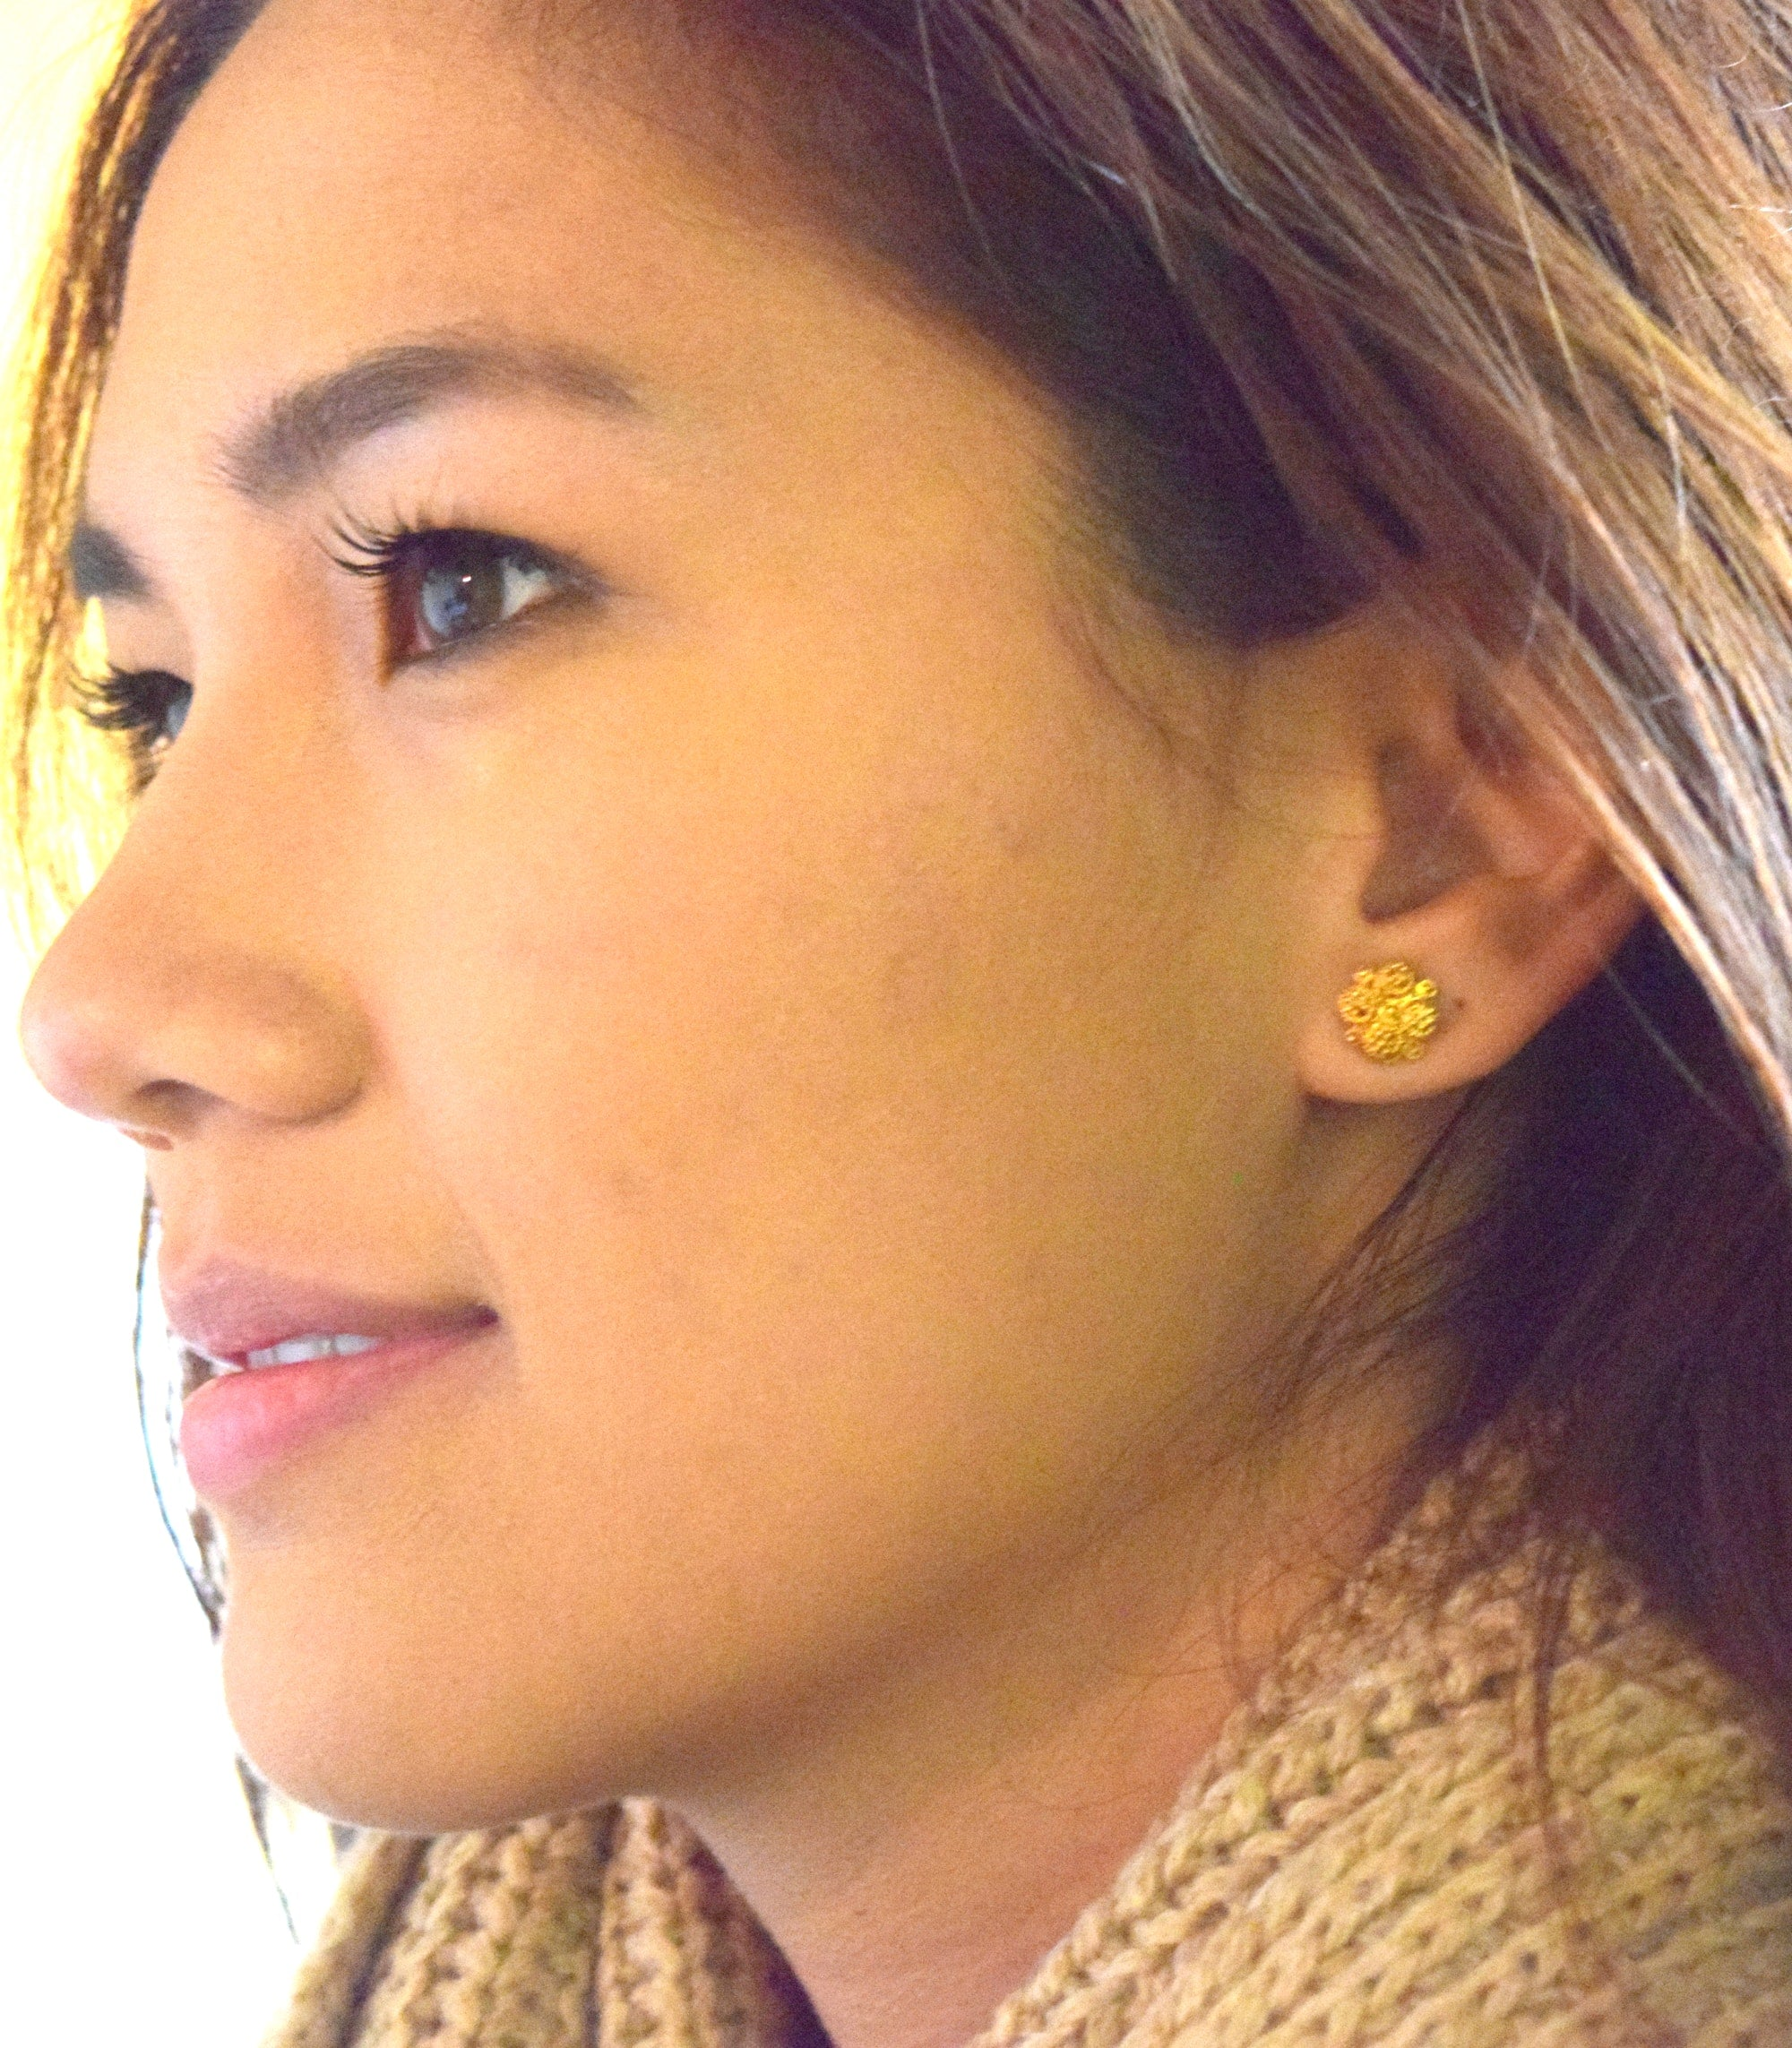 Estela Earrings on a model - AMAMI